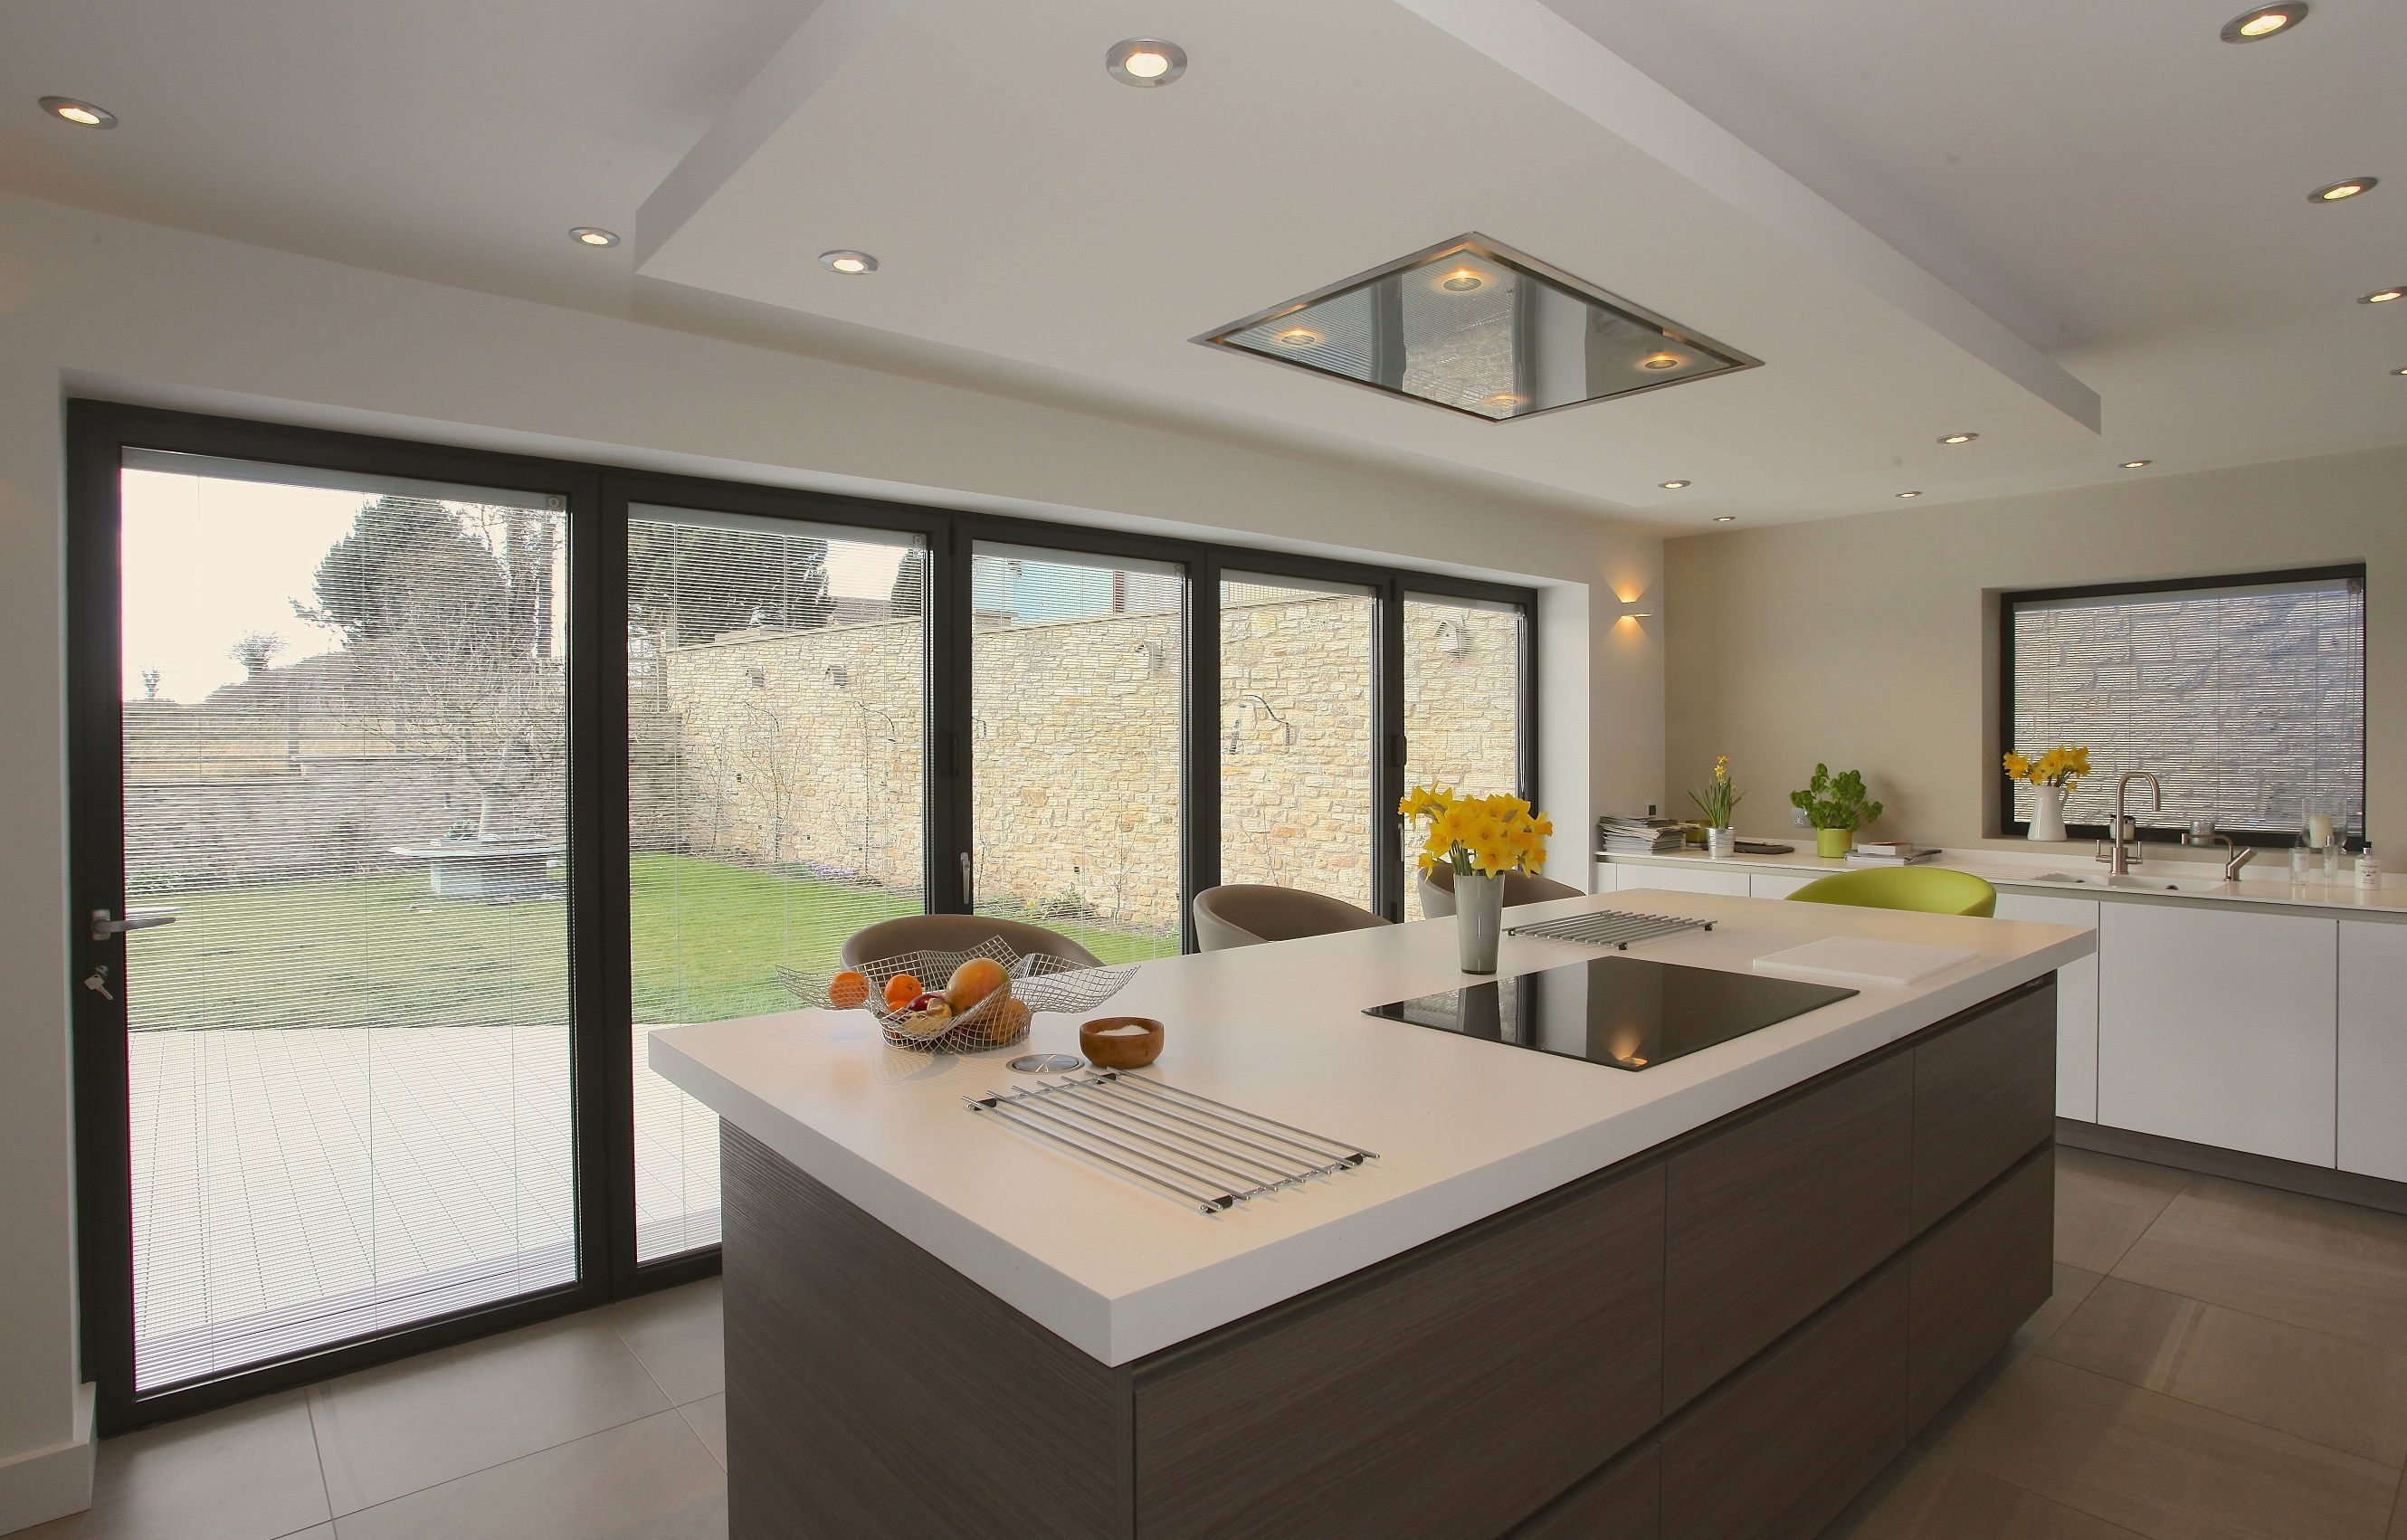 Bi-fold doors for kitchen extensions | Bi folding doors ...